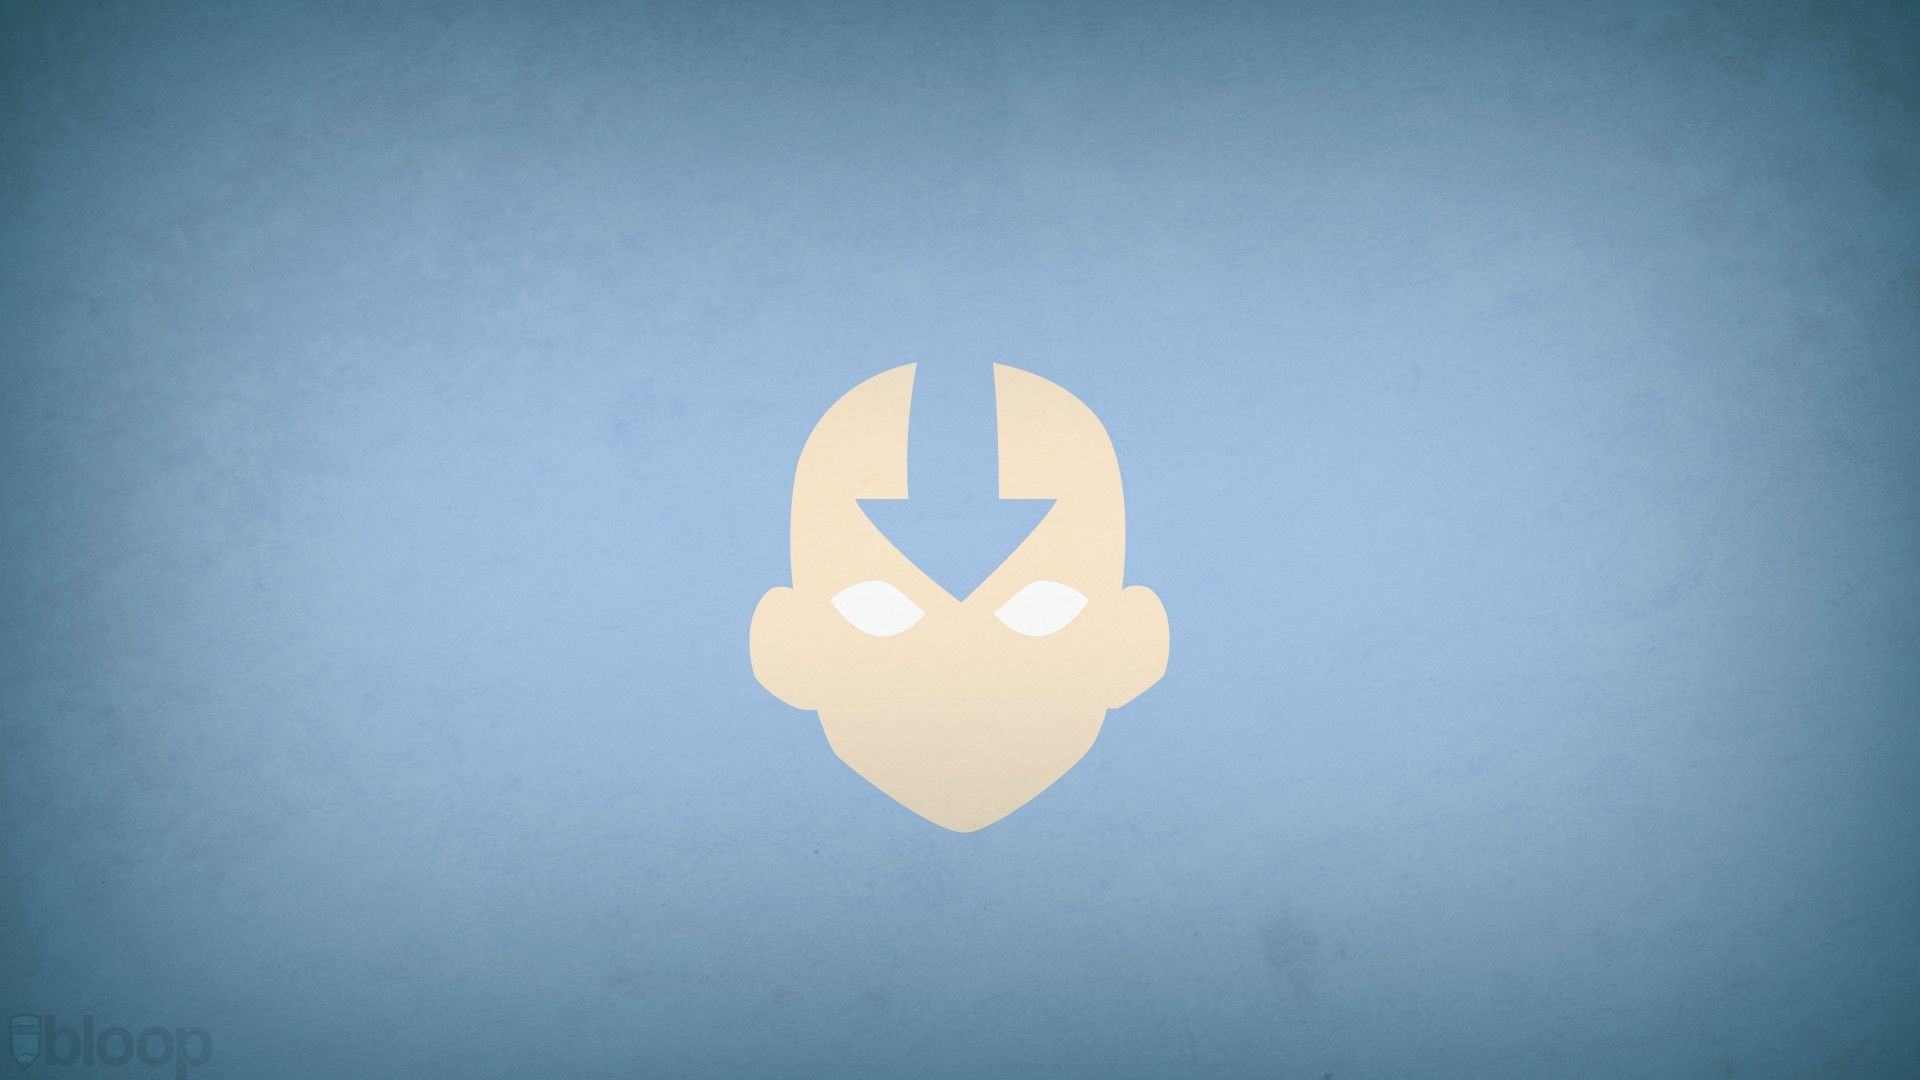 Minimalist Superhero Wallpapers By Bloop Album On Imgur Superhero Wallpaper The Last Airbender Avatar The Last Airbender